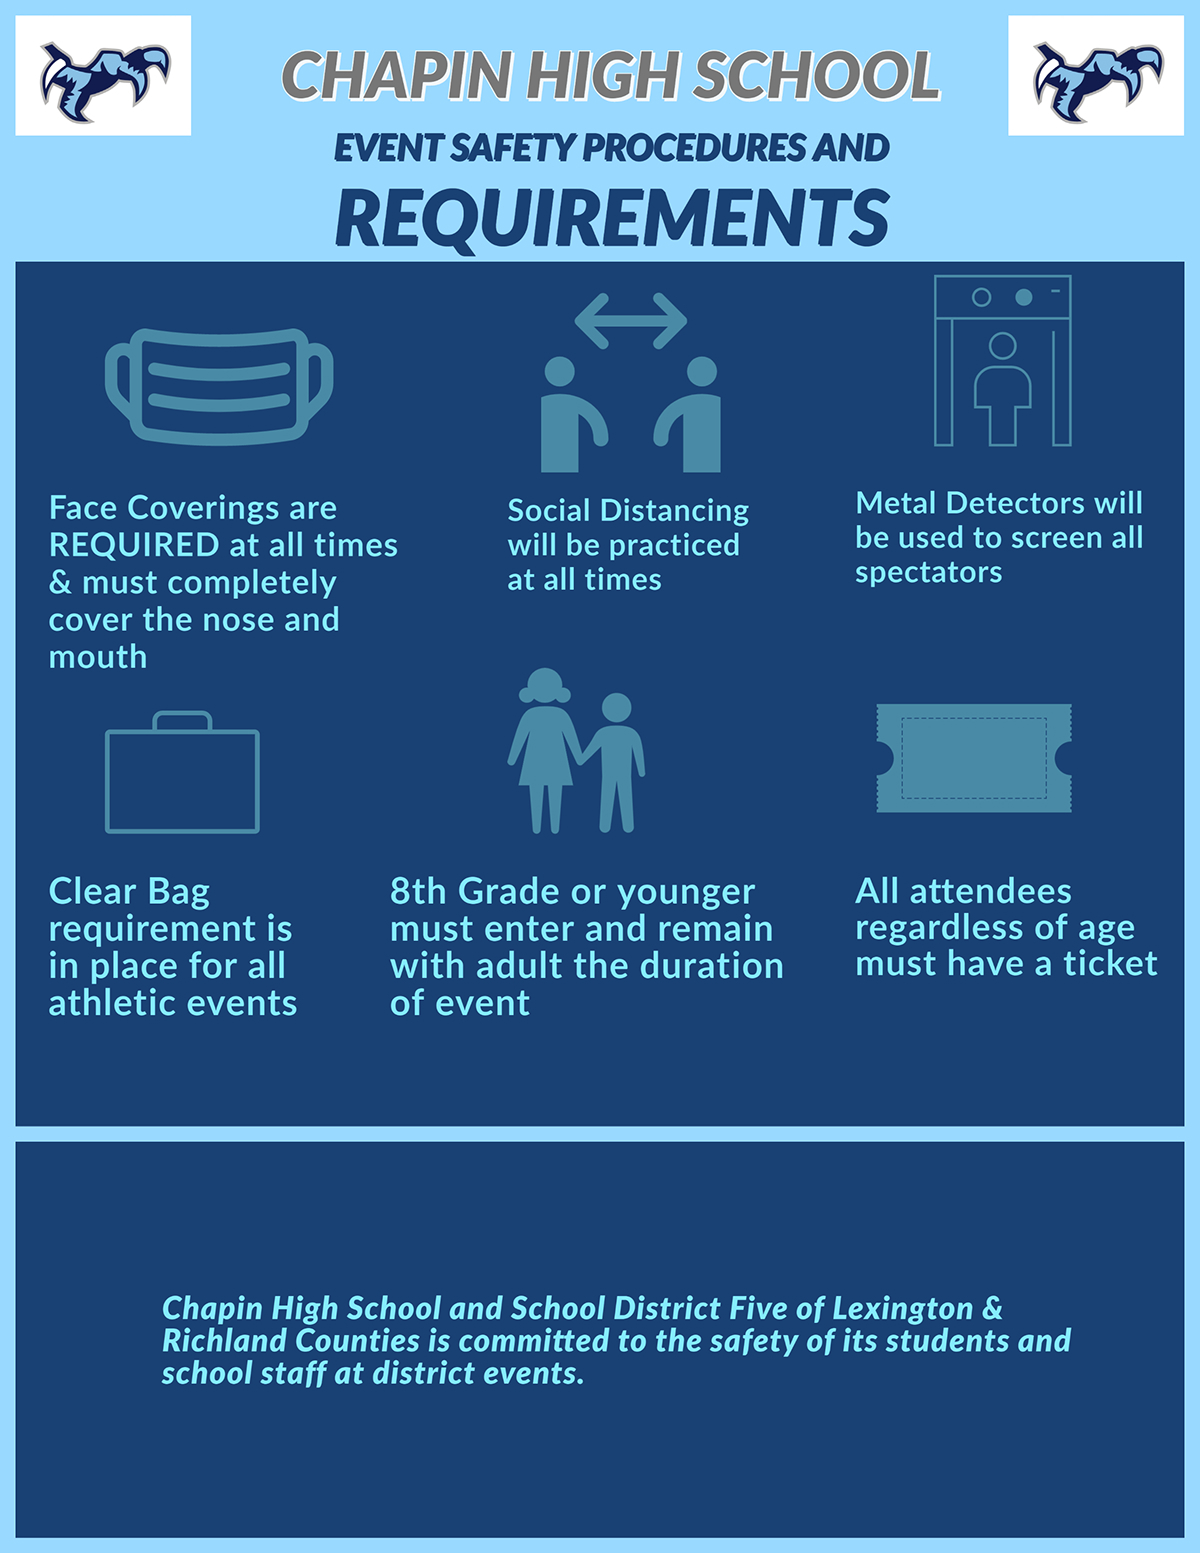 CHAPIN HIGH SCHOOL CHAPIN HIGH SCHOOL EVENT SAFETY PROCEDURES AND REQUIREMENTS 8th Grade or younger must enter and remain with adult the duration of event Clear Bag requirement is in place for all athletic events All attendees regardless of age must have a ticket Face Coverings are REQUIRED at all times & must completely cover the nose and mouth Chapin High School and School District Five of Lexington & Richland Counties is committed to the safety of its students and school staff at district events. Metal Detectors will be used to screen all spectators Social Distancing will be practiced at all times